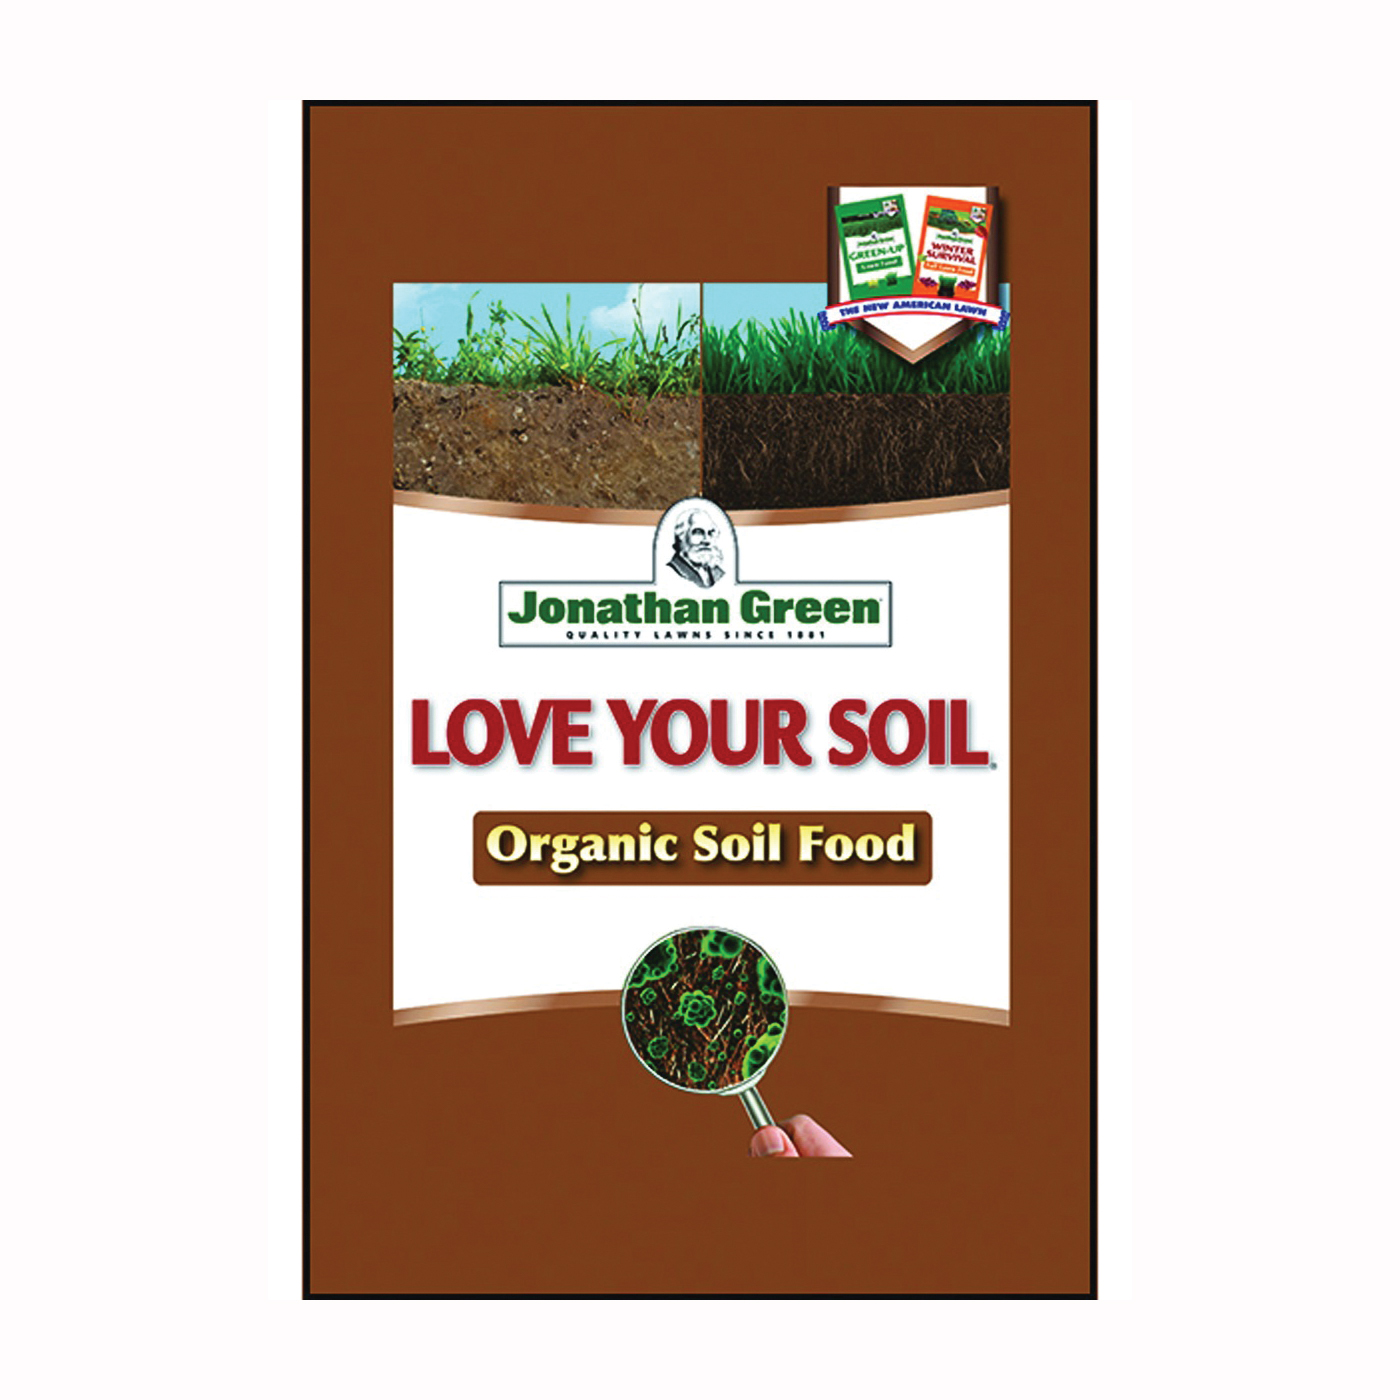 Picture of Jonathan Green Love Your Soil 12190 Organic Lawn Fertilizer, Granular, 18 lb Package, Bag